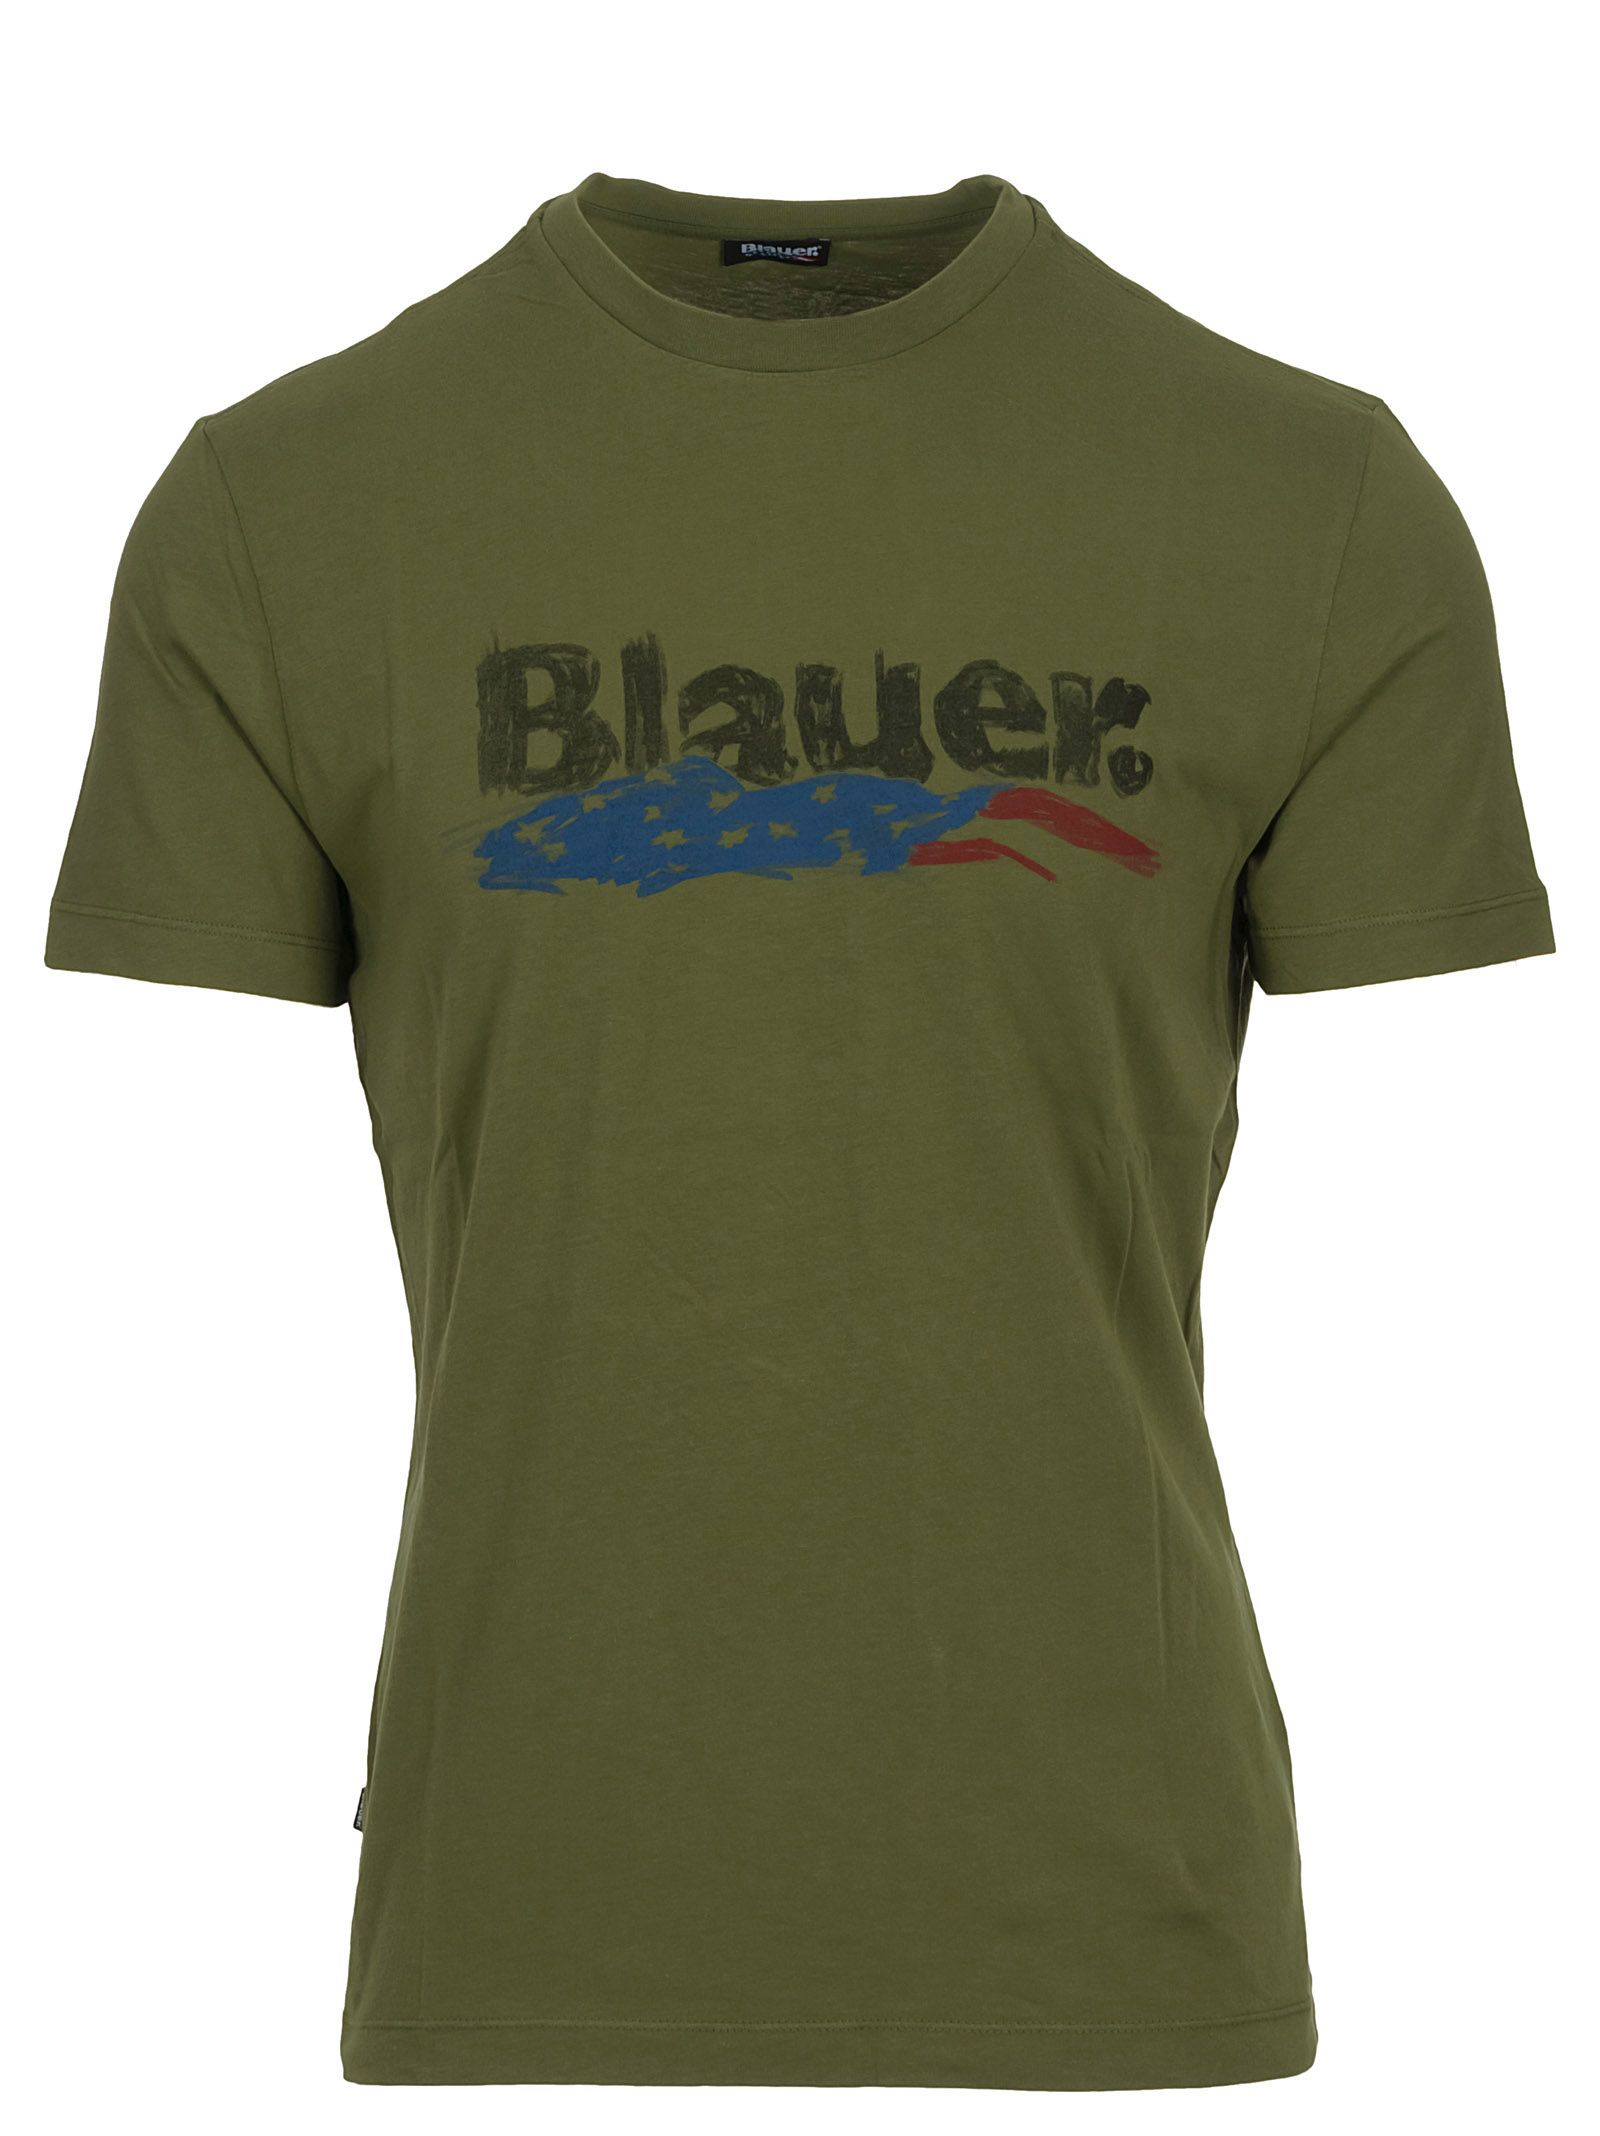 TOPWEAR - T-shirts BLAUER. H.T. Low Price Sale Latest Collections Online Sast For Sale Pay With Visa Online Outlet Excellent v7Cc1